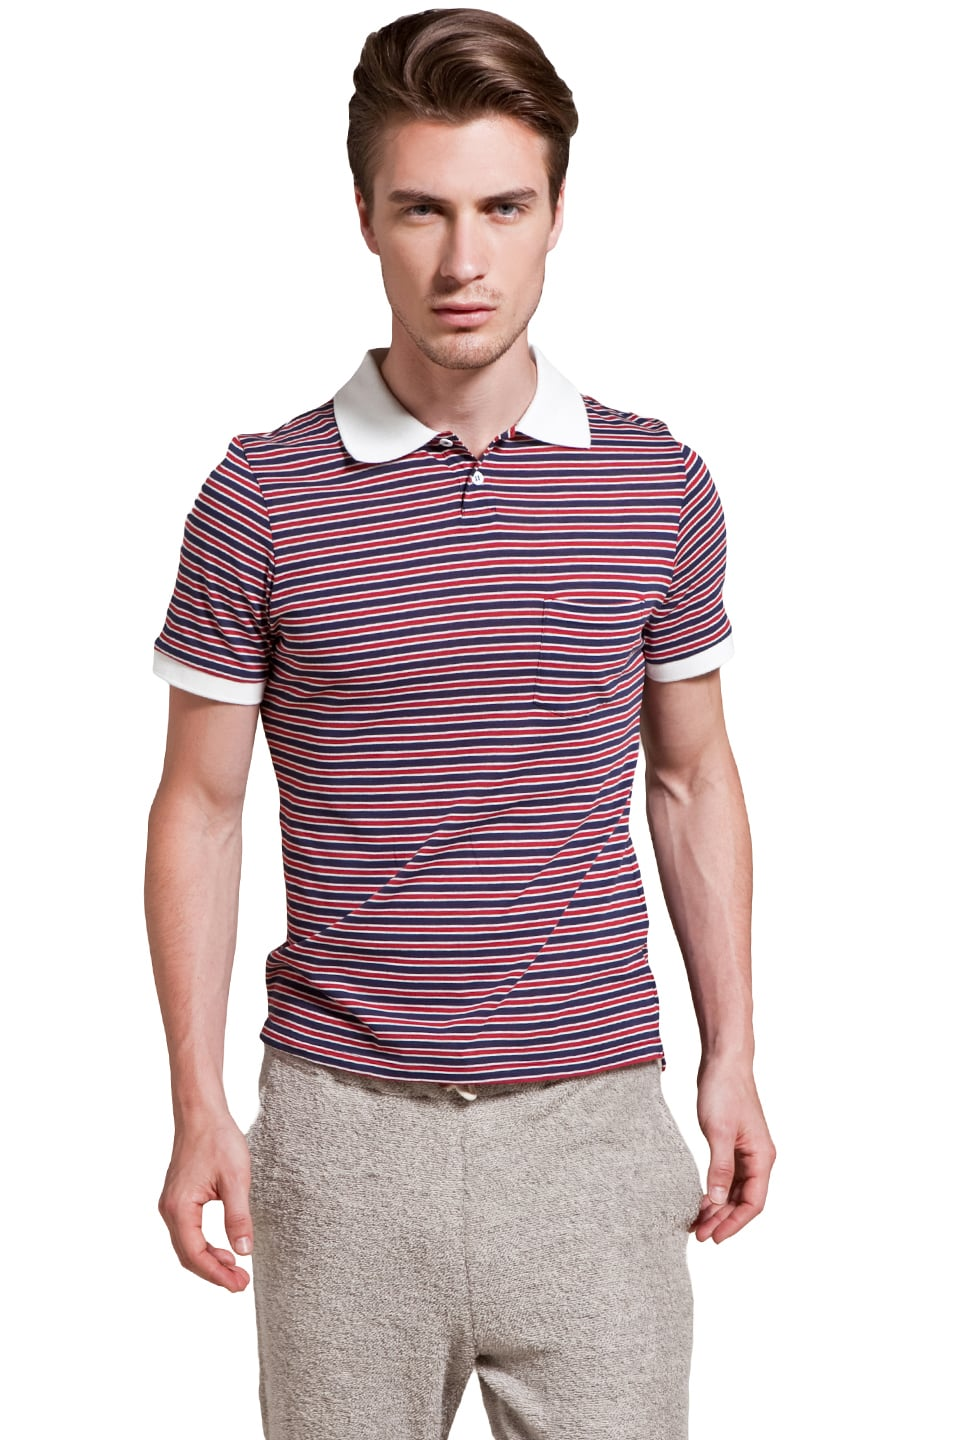 9ce73f94e84a Image 1 of THIS IS NOT A POLO SHIRT. by band of outsiders Short Sleeve